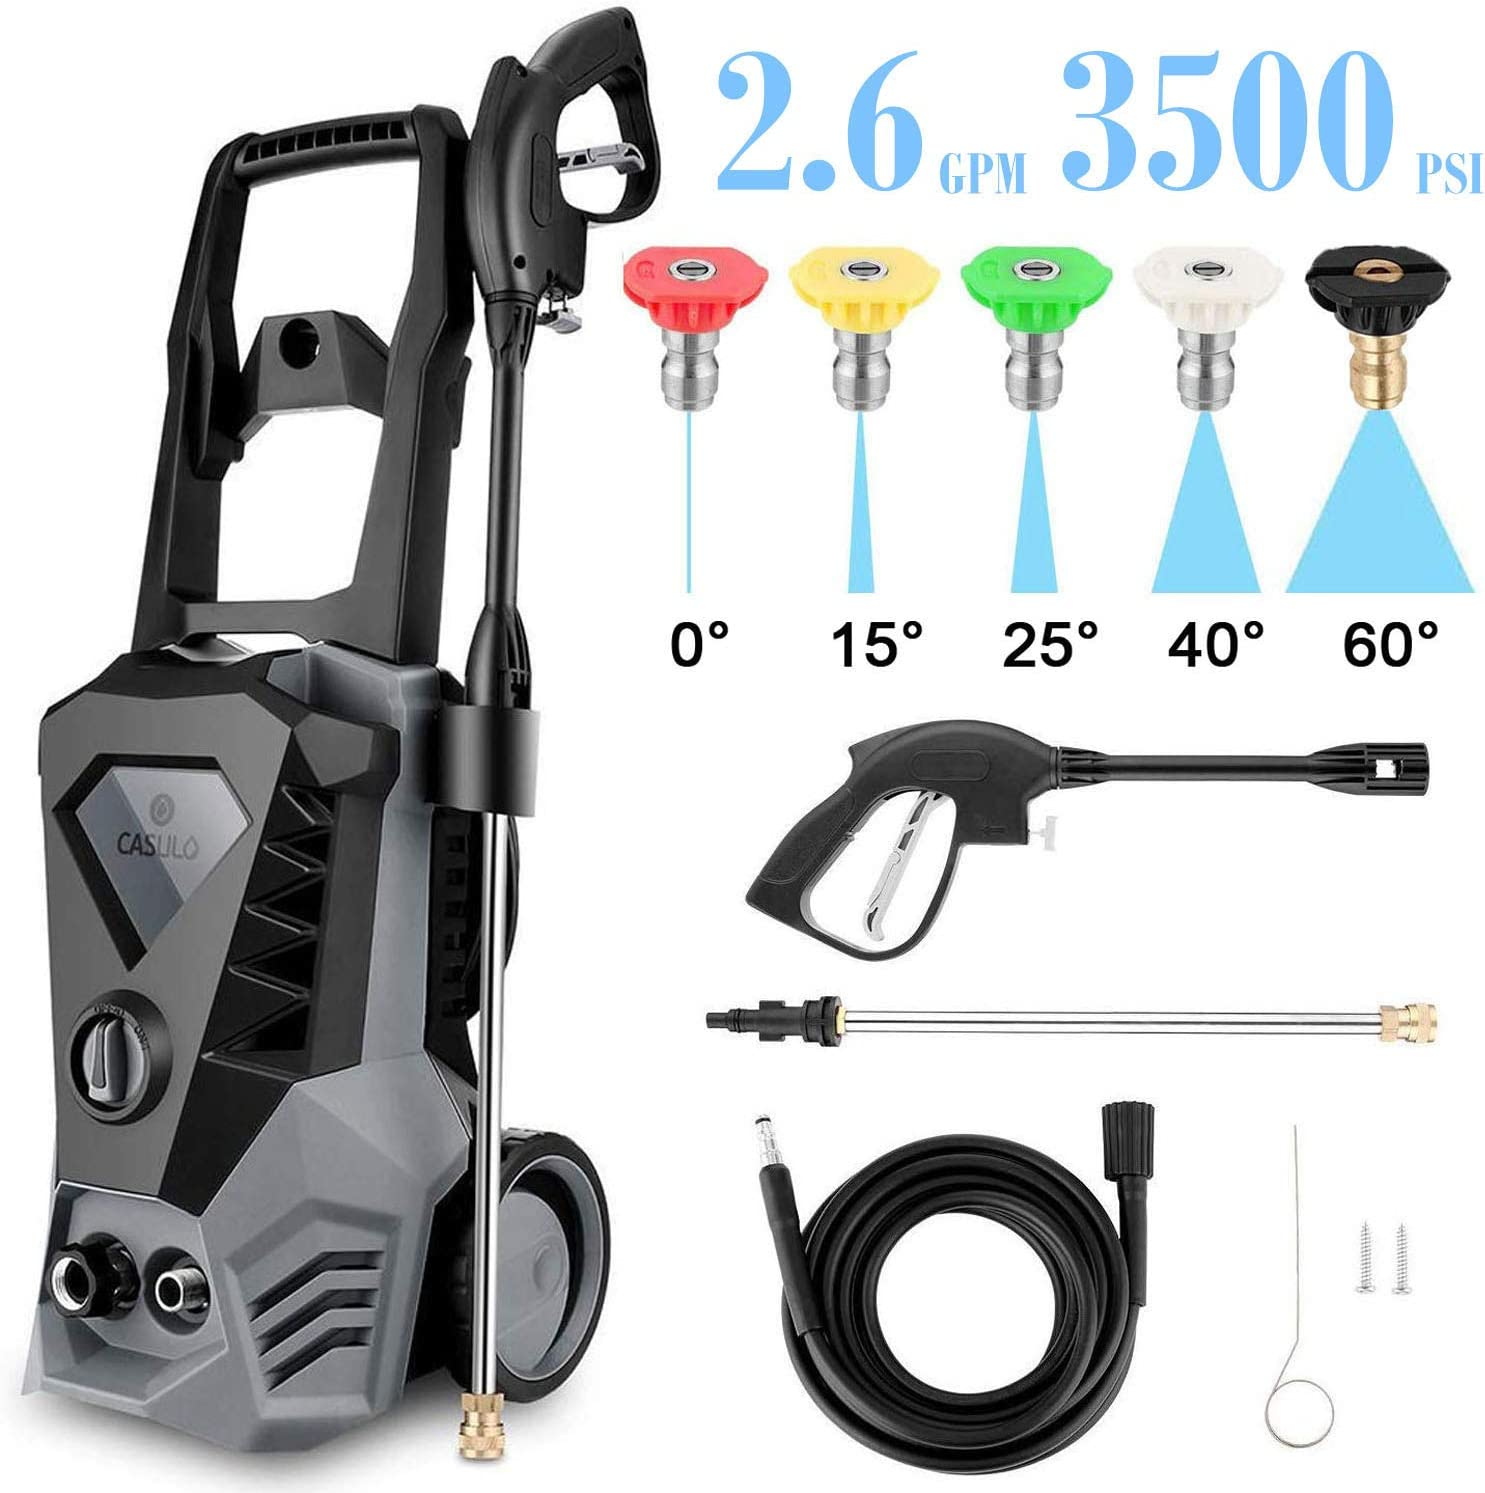 ROOJER High Pressure Washer 3500 Max PSI 2.6 GPM Electric Car Pressure Washer, 32 ft Cable and 5 Quick-Connect Spray Tips for Home Garden (US Stock) (Grey)